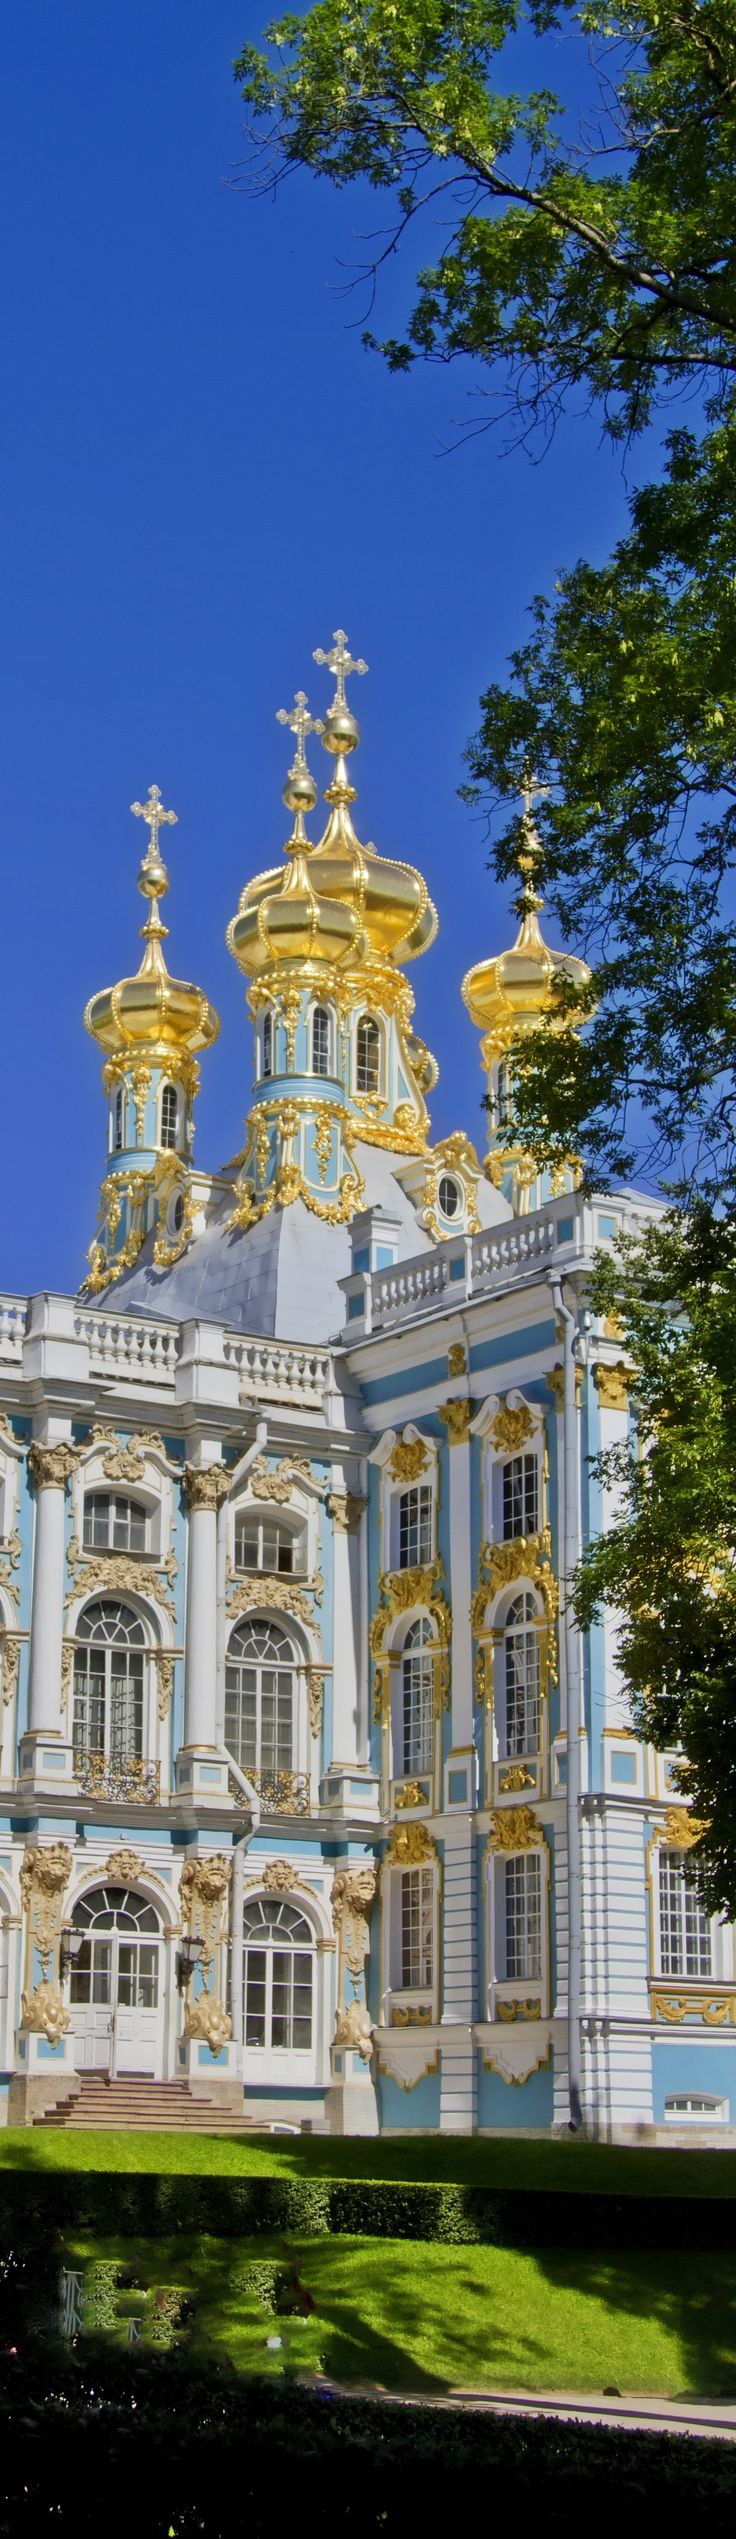 Catherine's Palace in Pushkin, Russia. Visit when you cruise to St. Petersburg with Azamara!